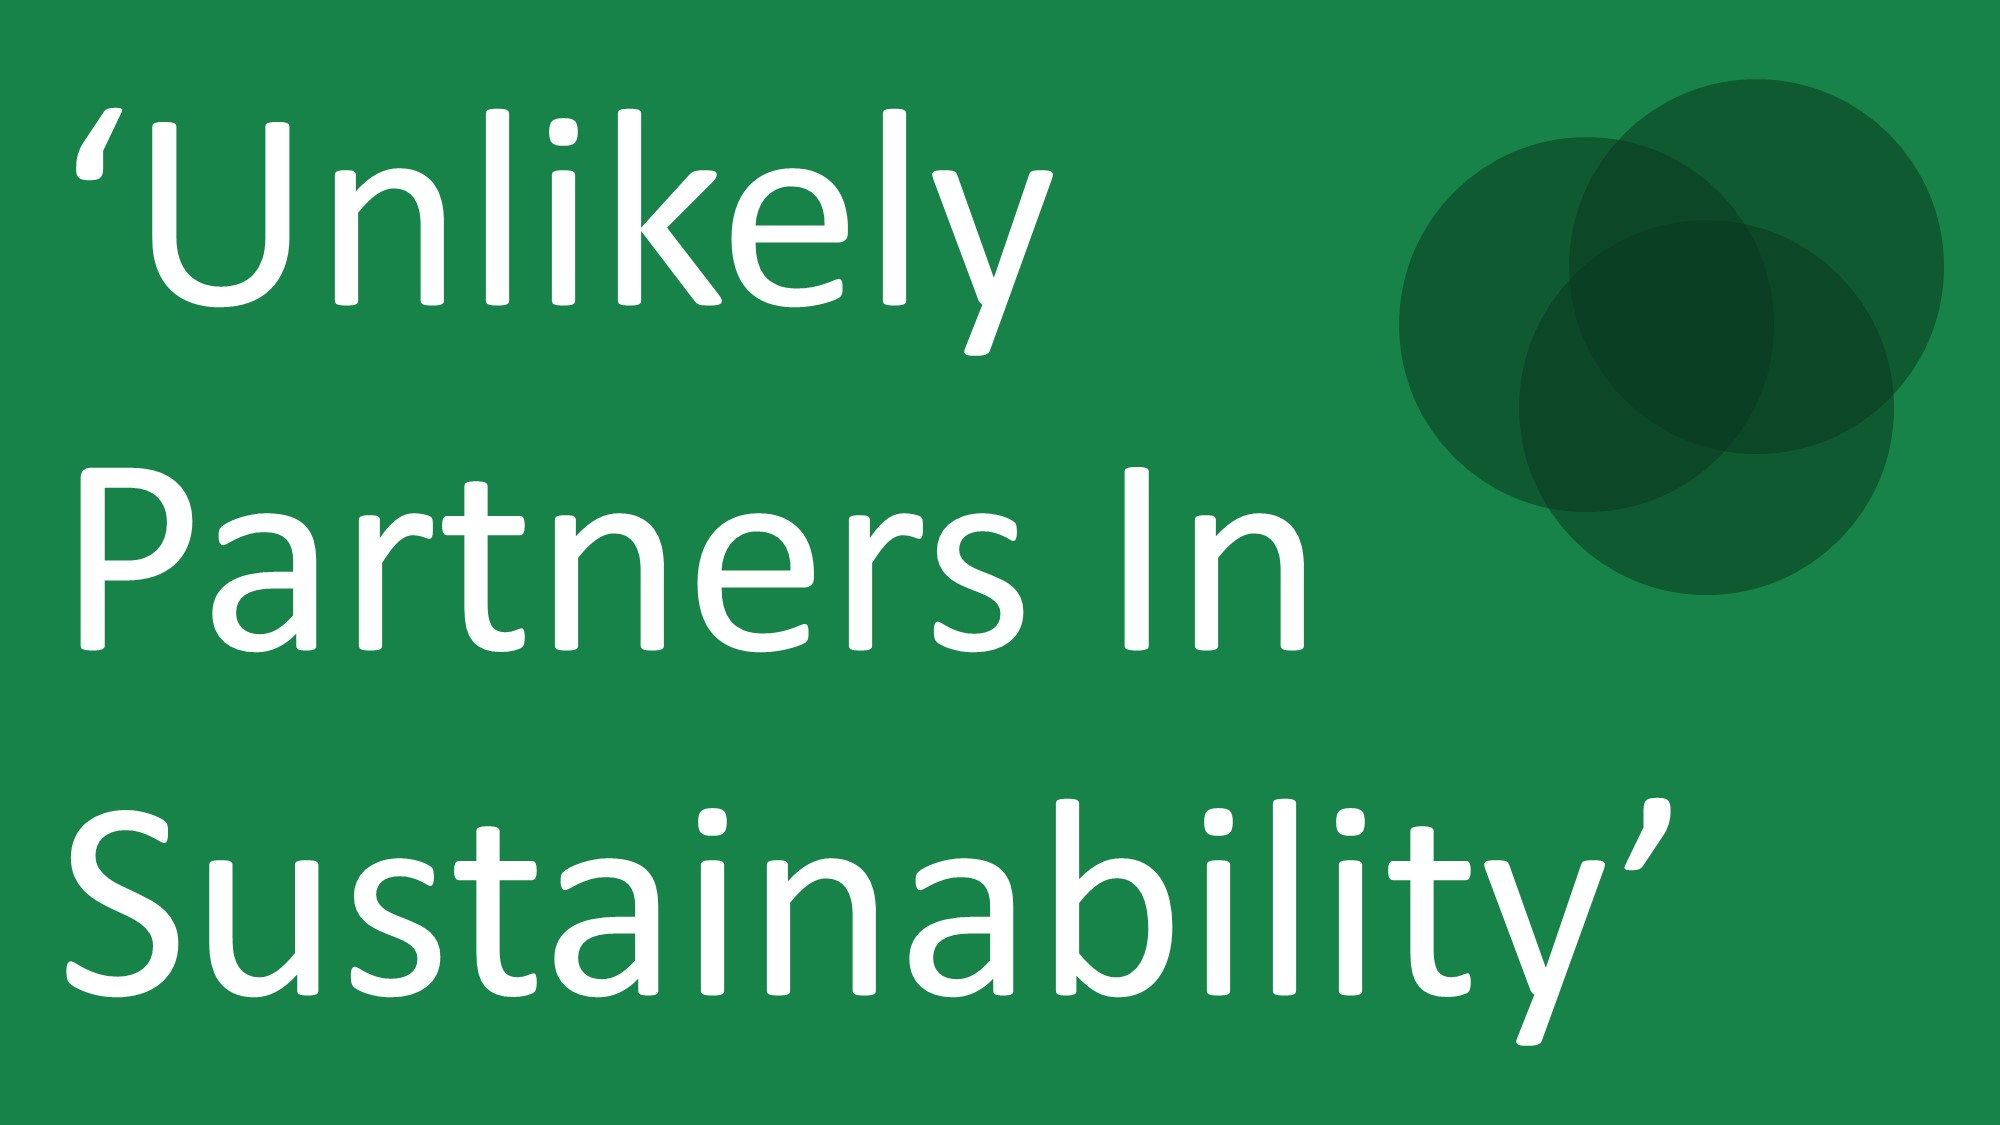 Unlikely Partners in Sustainability